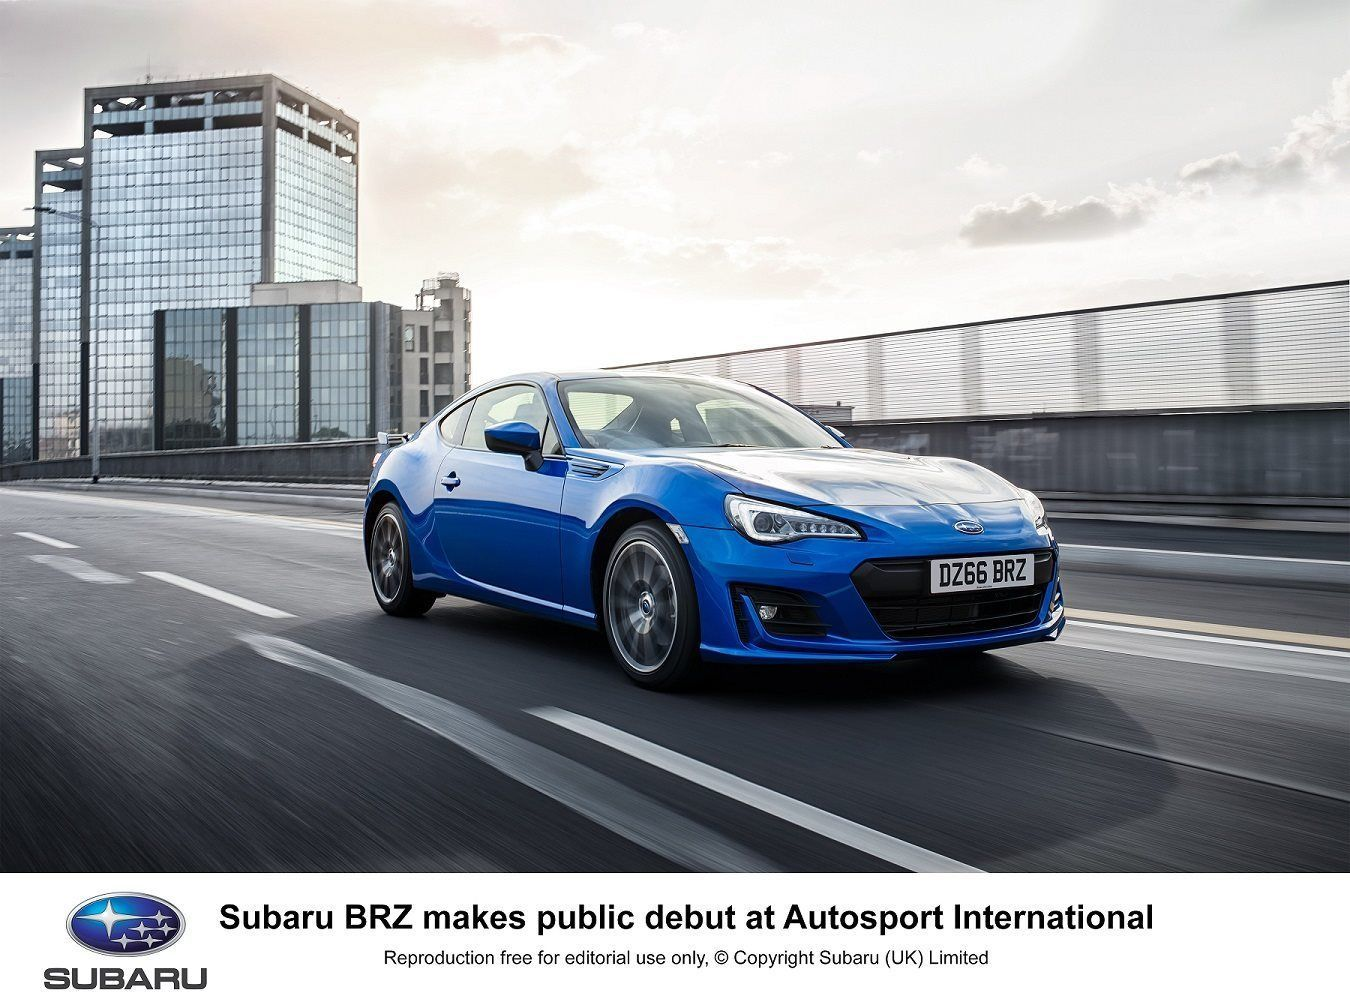 SUBARU BRZ MAKES PUBLIC DEBUT AT AUTOSPORT INTERNATIONAL